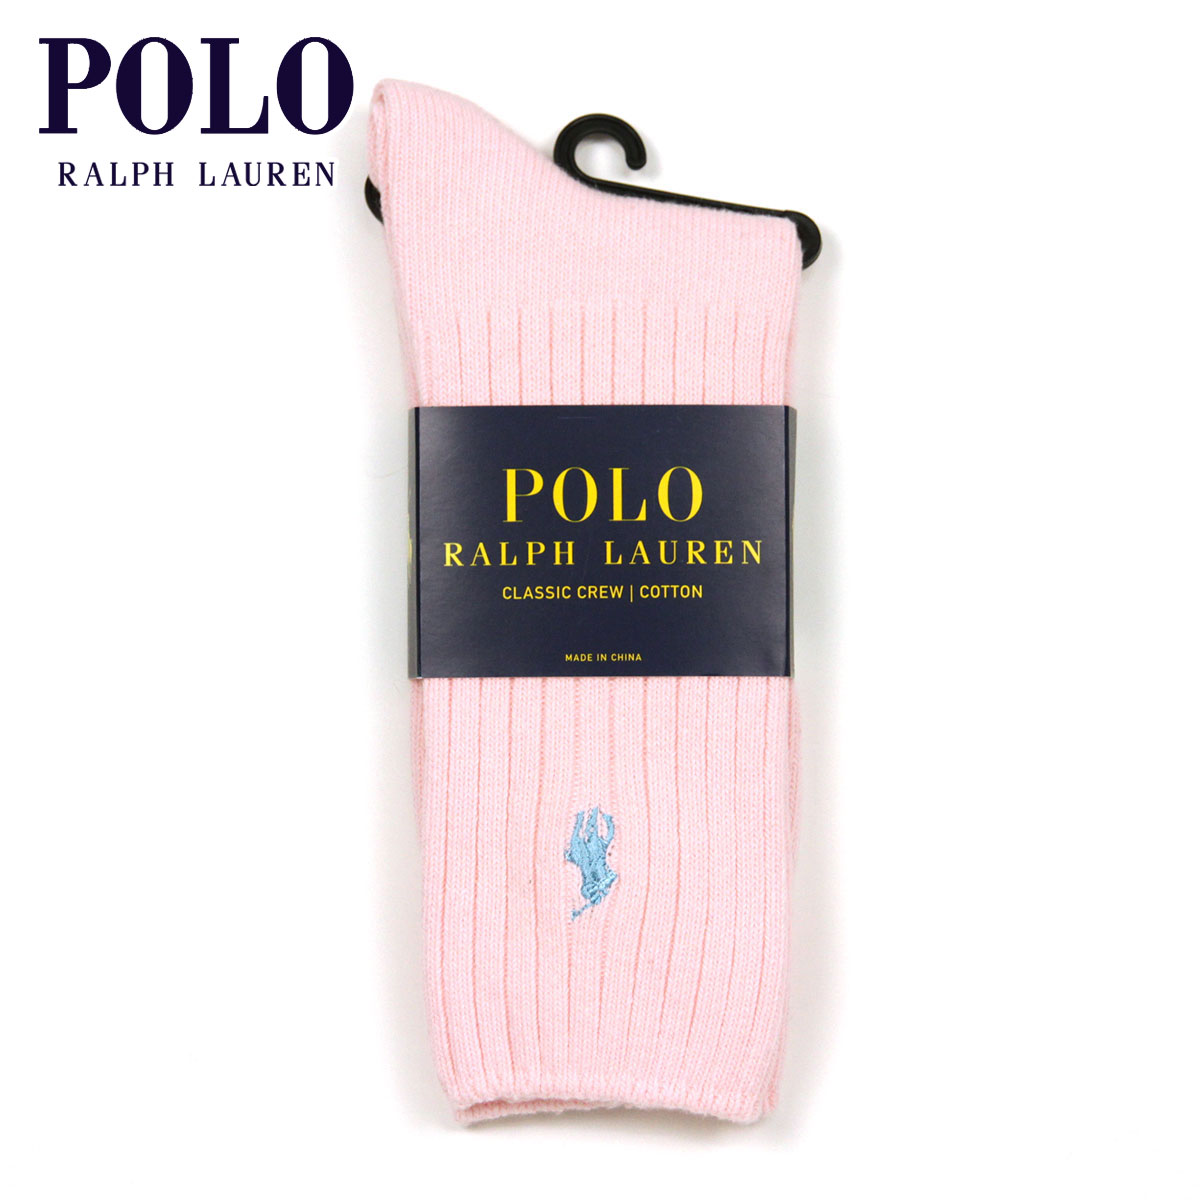 ポロ ラルフローレン ソックス メンズ 正規品 POLO RALPH LAUREN 靴下 クルーソックス COTTON RIB SINGLE SOCK PINK - LIGHT BLUE 696 - SOFT PINK A05B B1C C7D D1E E11F